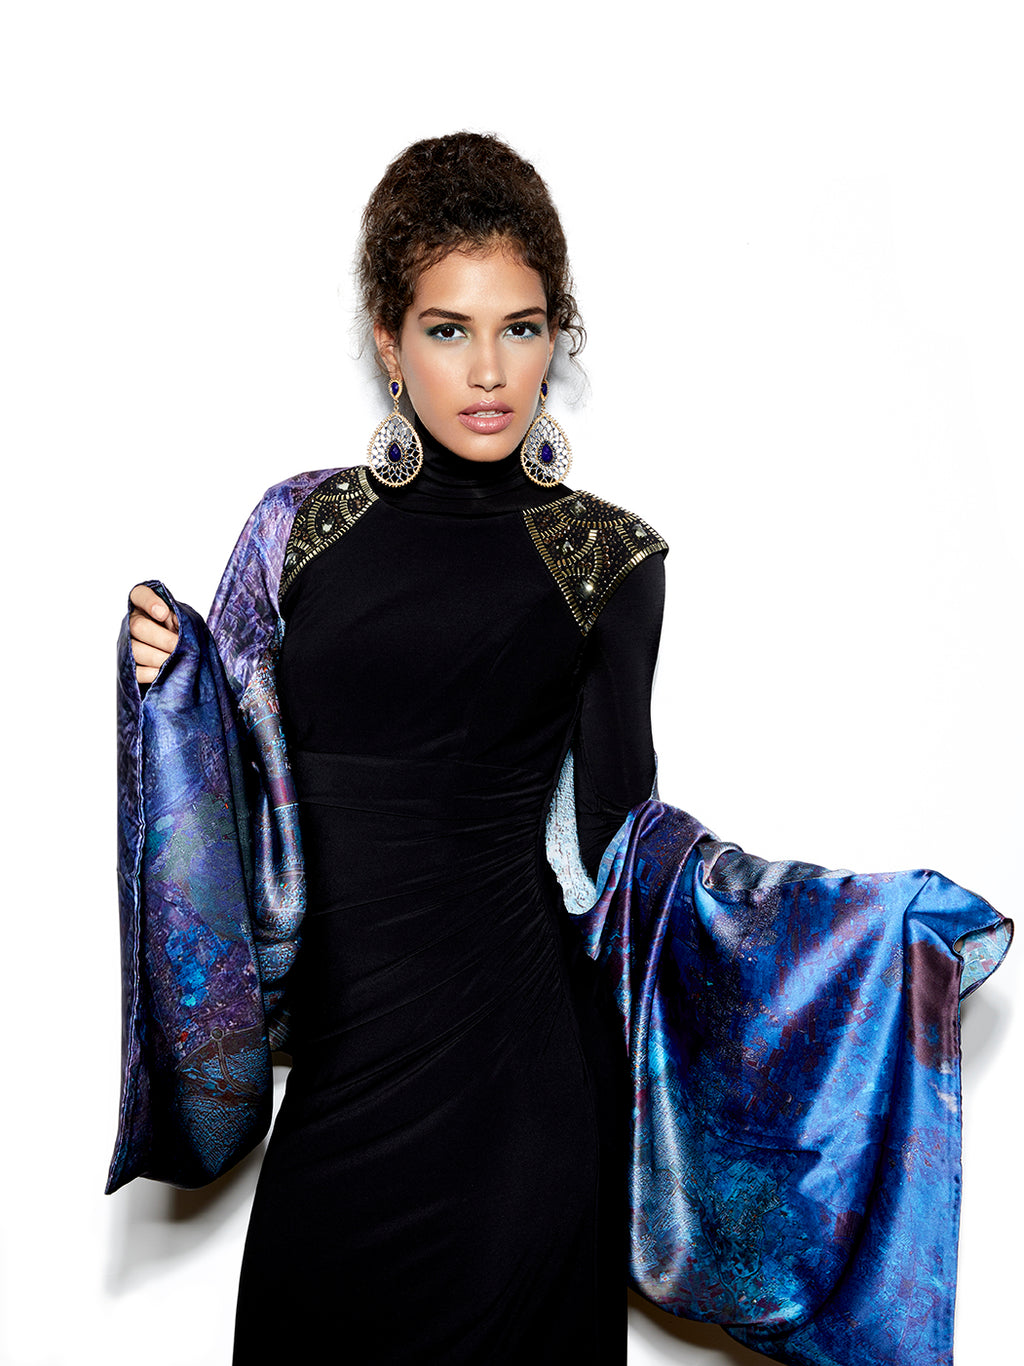 Mashhad Sleeve Silk Scarf, Shawl, Top, Scarf